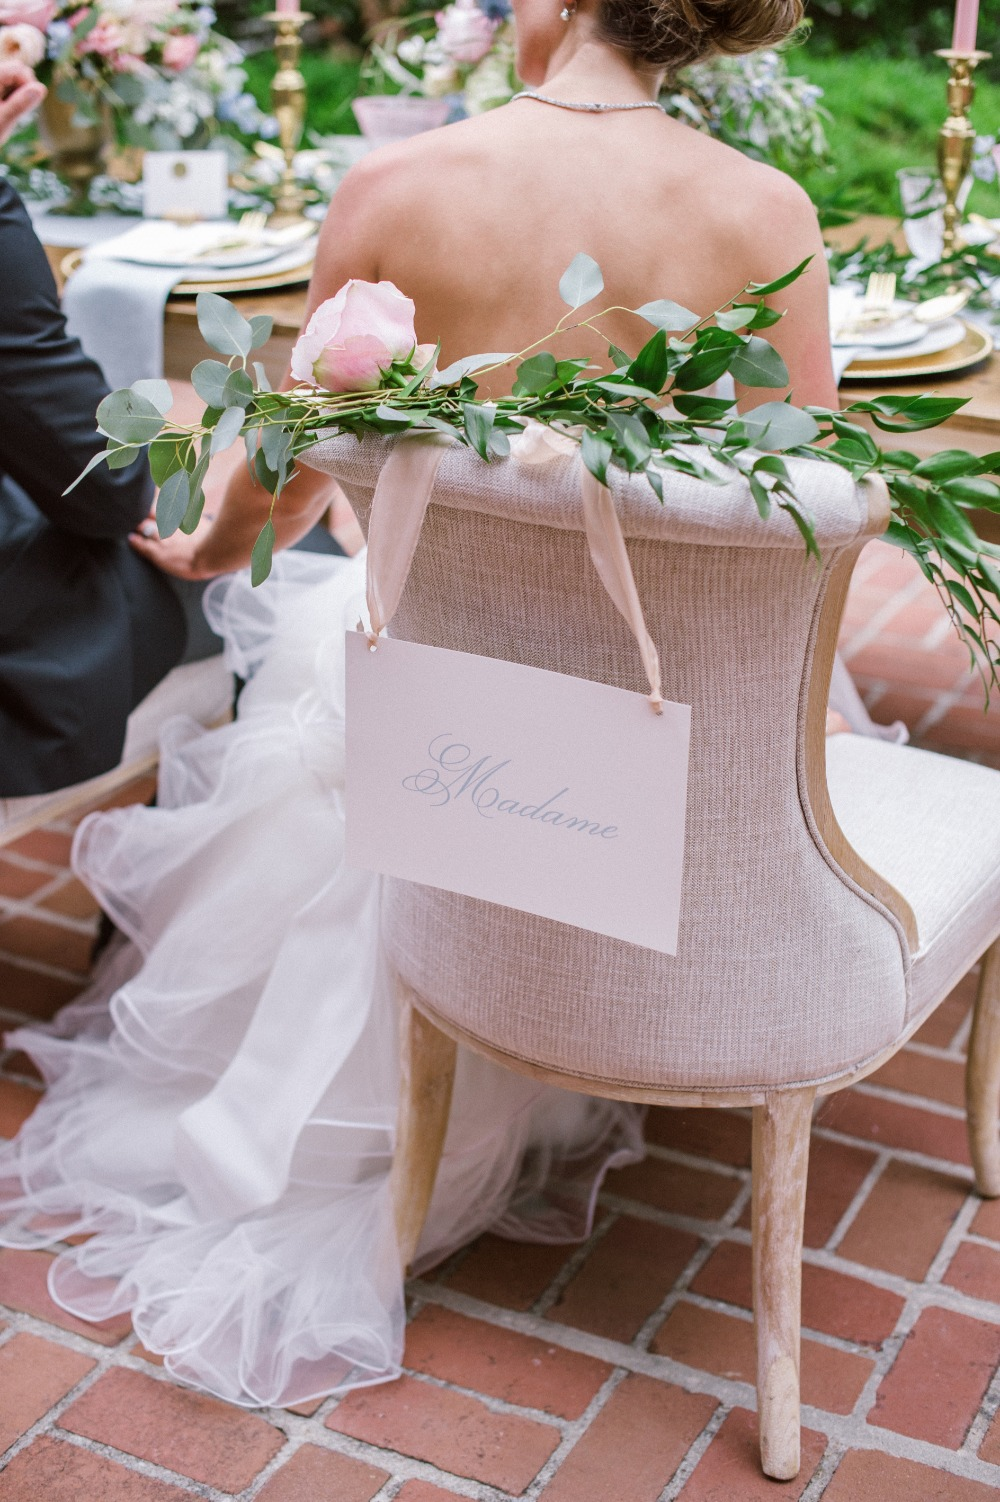 Madame brides wedding seat sign with flower garland draped chair